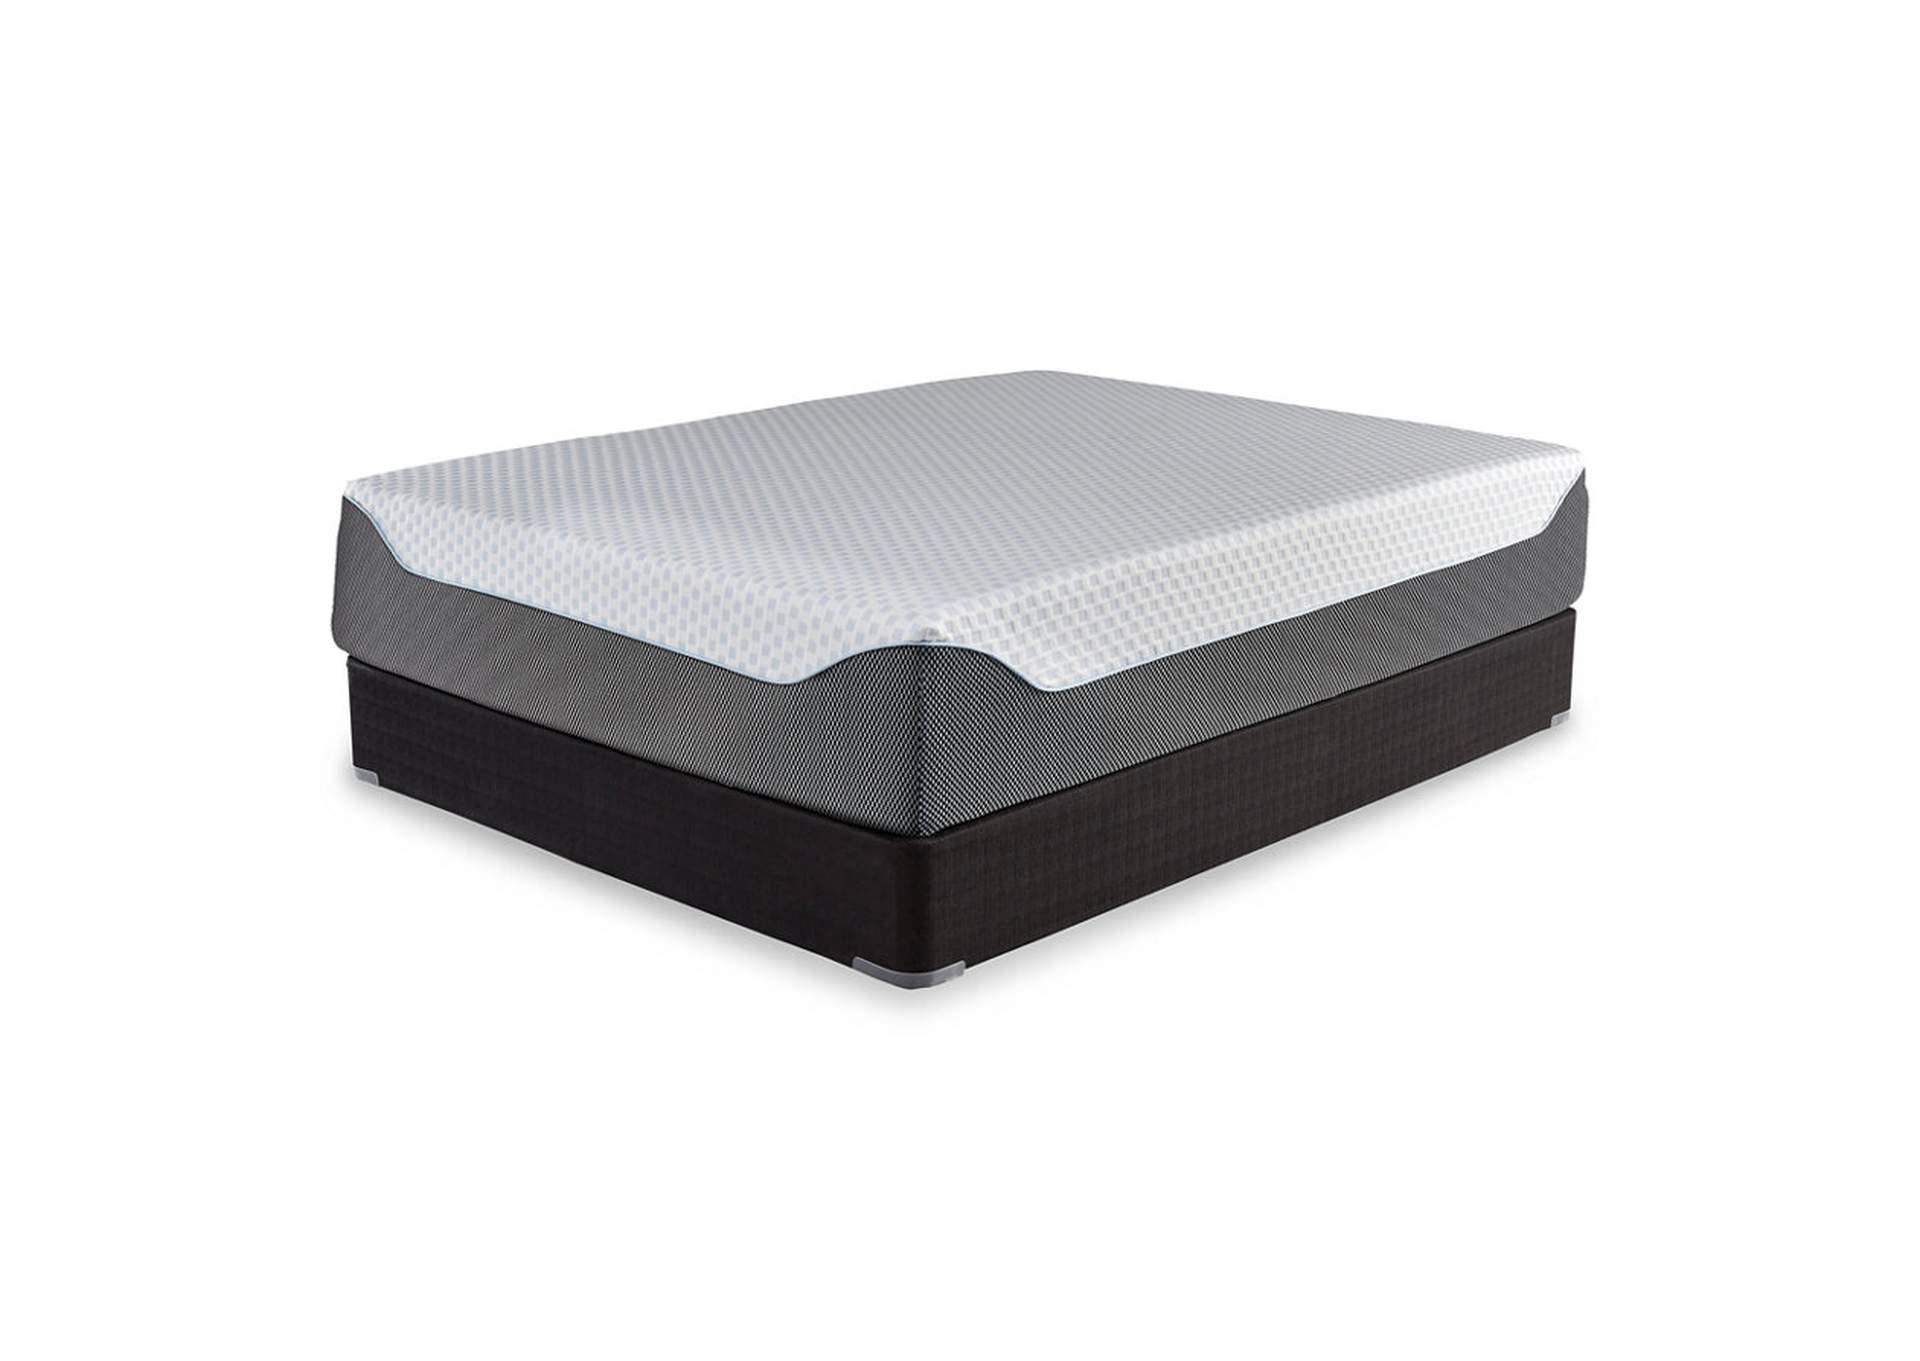 14 Inch Chime Elite California King Memory Foam Mattress in a Box w/Foundation,Sierra Sleep by Ashley